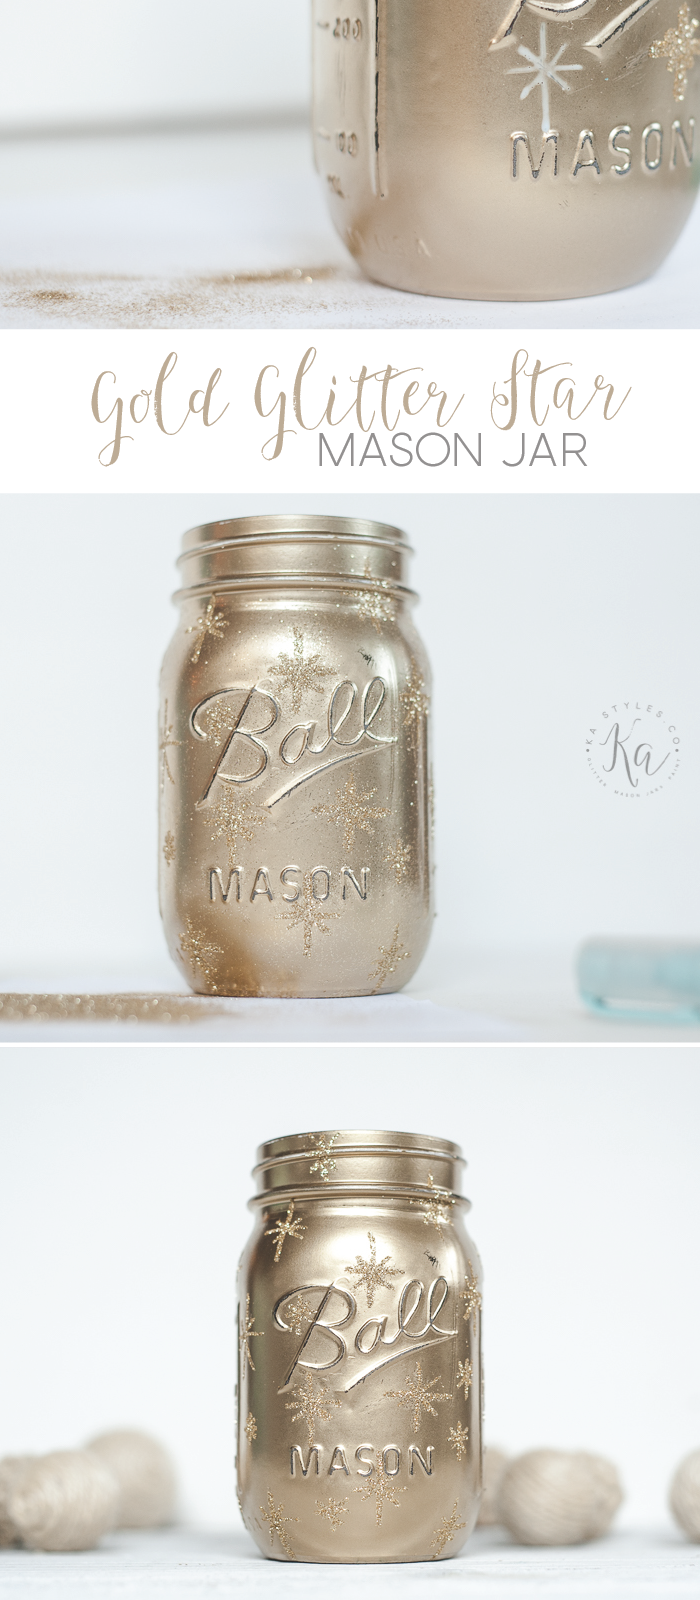 Gold painted mason jar with gold glitter stars for Christmas or New Years. Cute luminary.